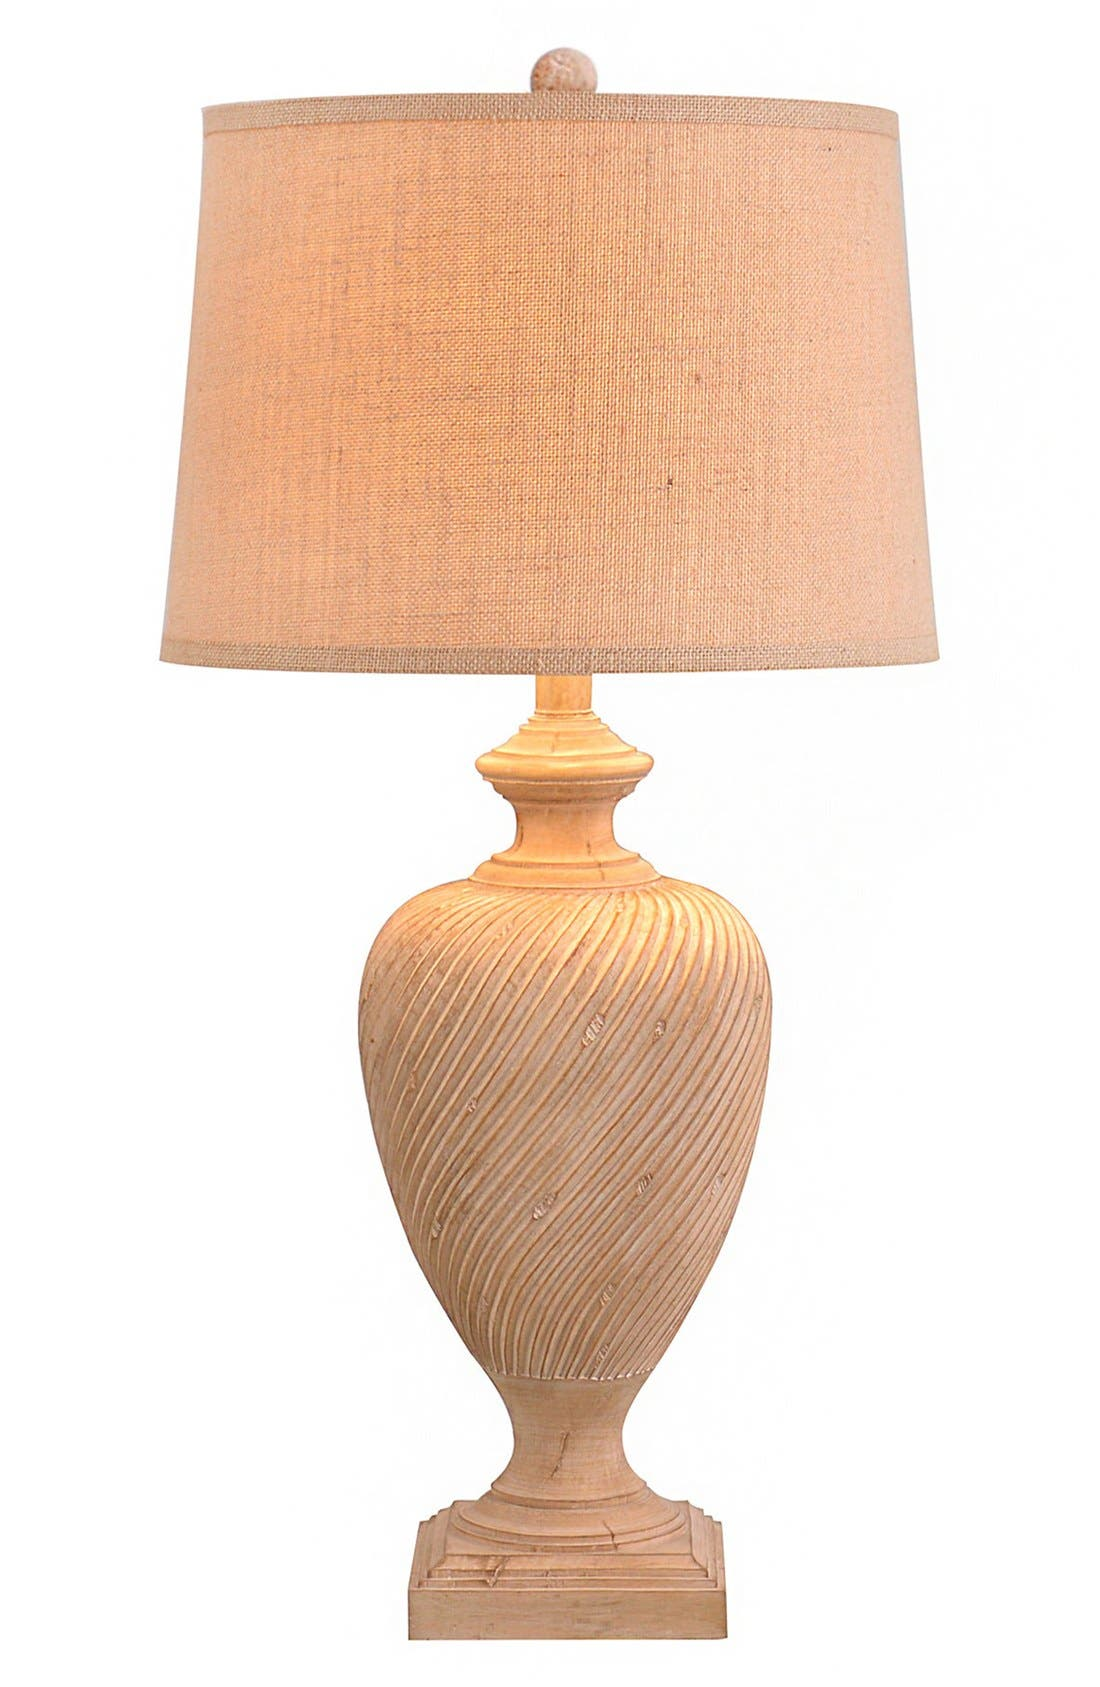 JALEXANDER LIGHTING,                             JAlexander Scroll Engraved Resin Table Lamp,                             Main thumbnail 1, color,                             250